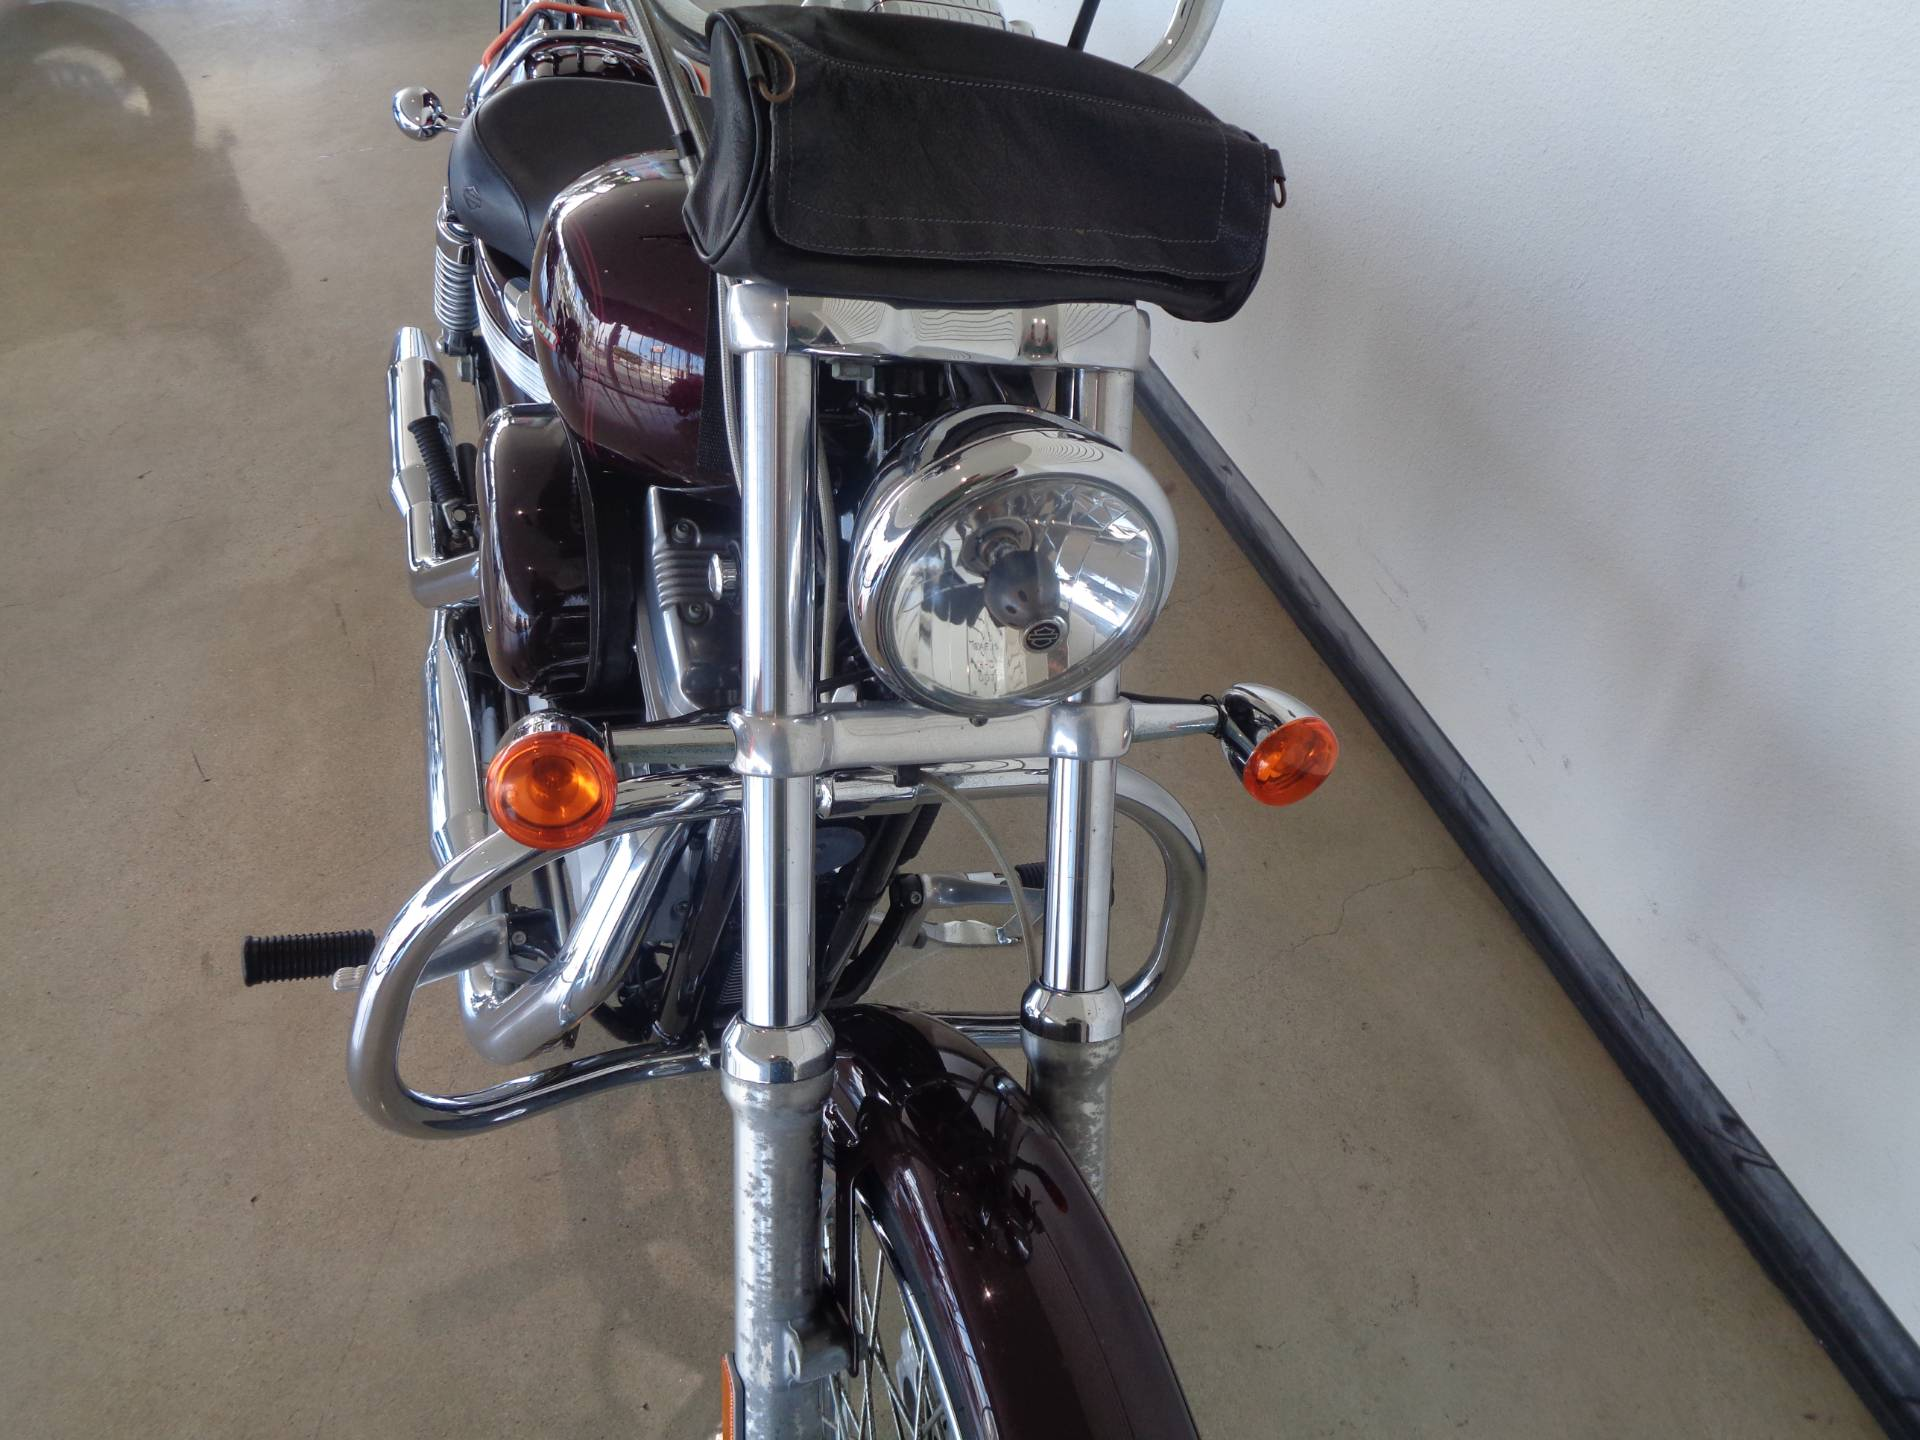 2005 Harley-Davidson Sportster® XL 883C in Chula Vista, California - Photo 11